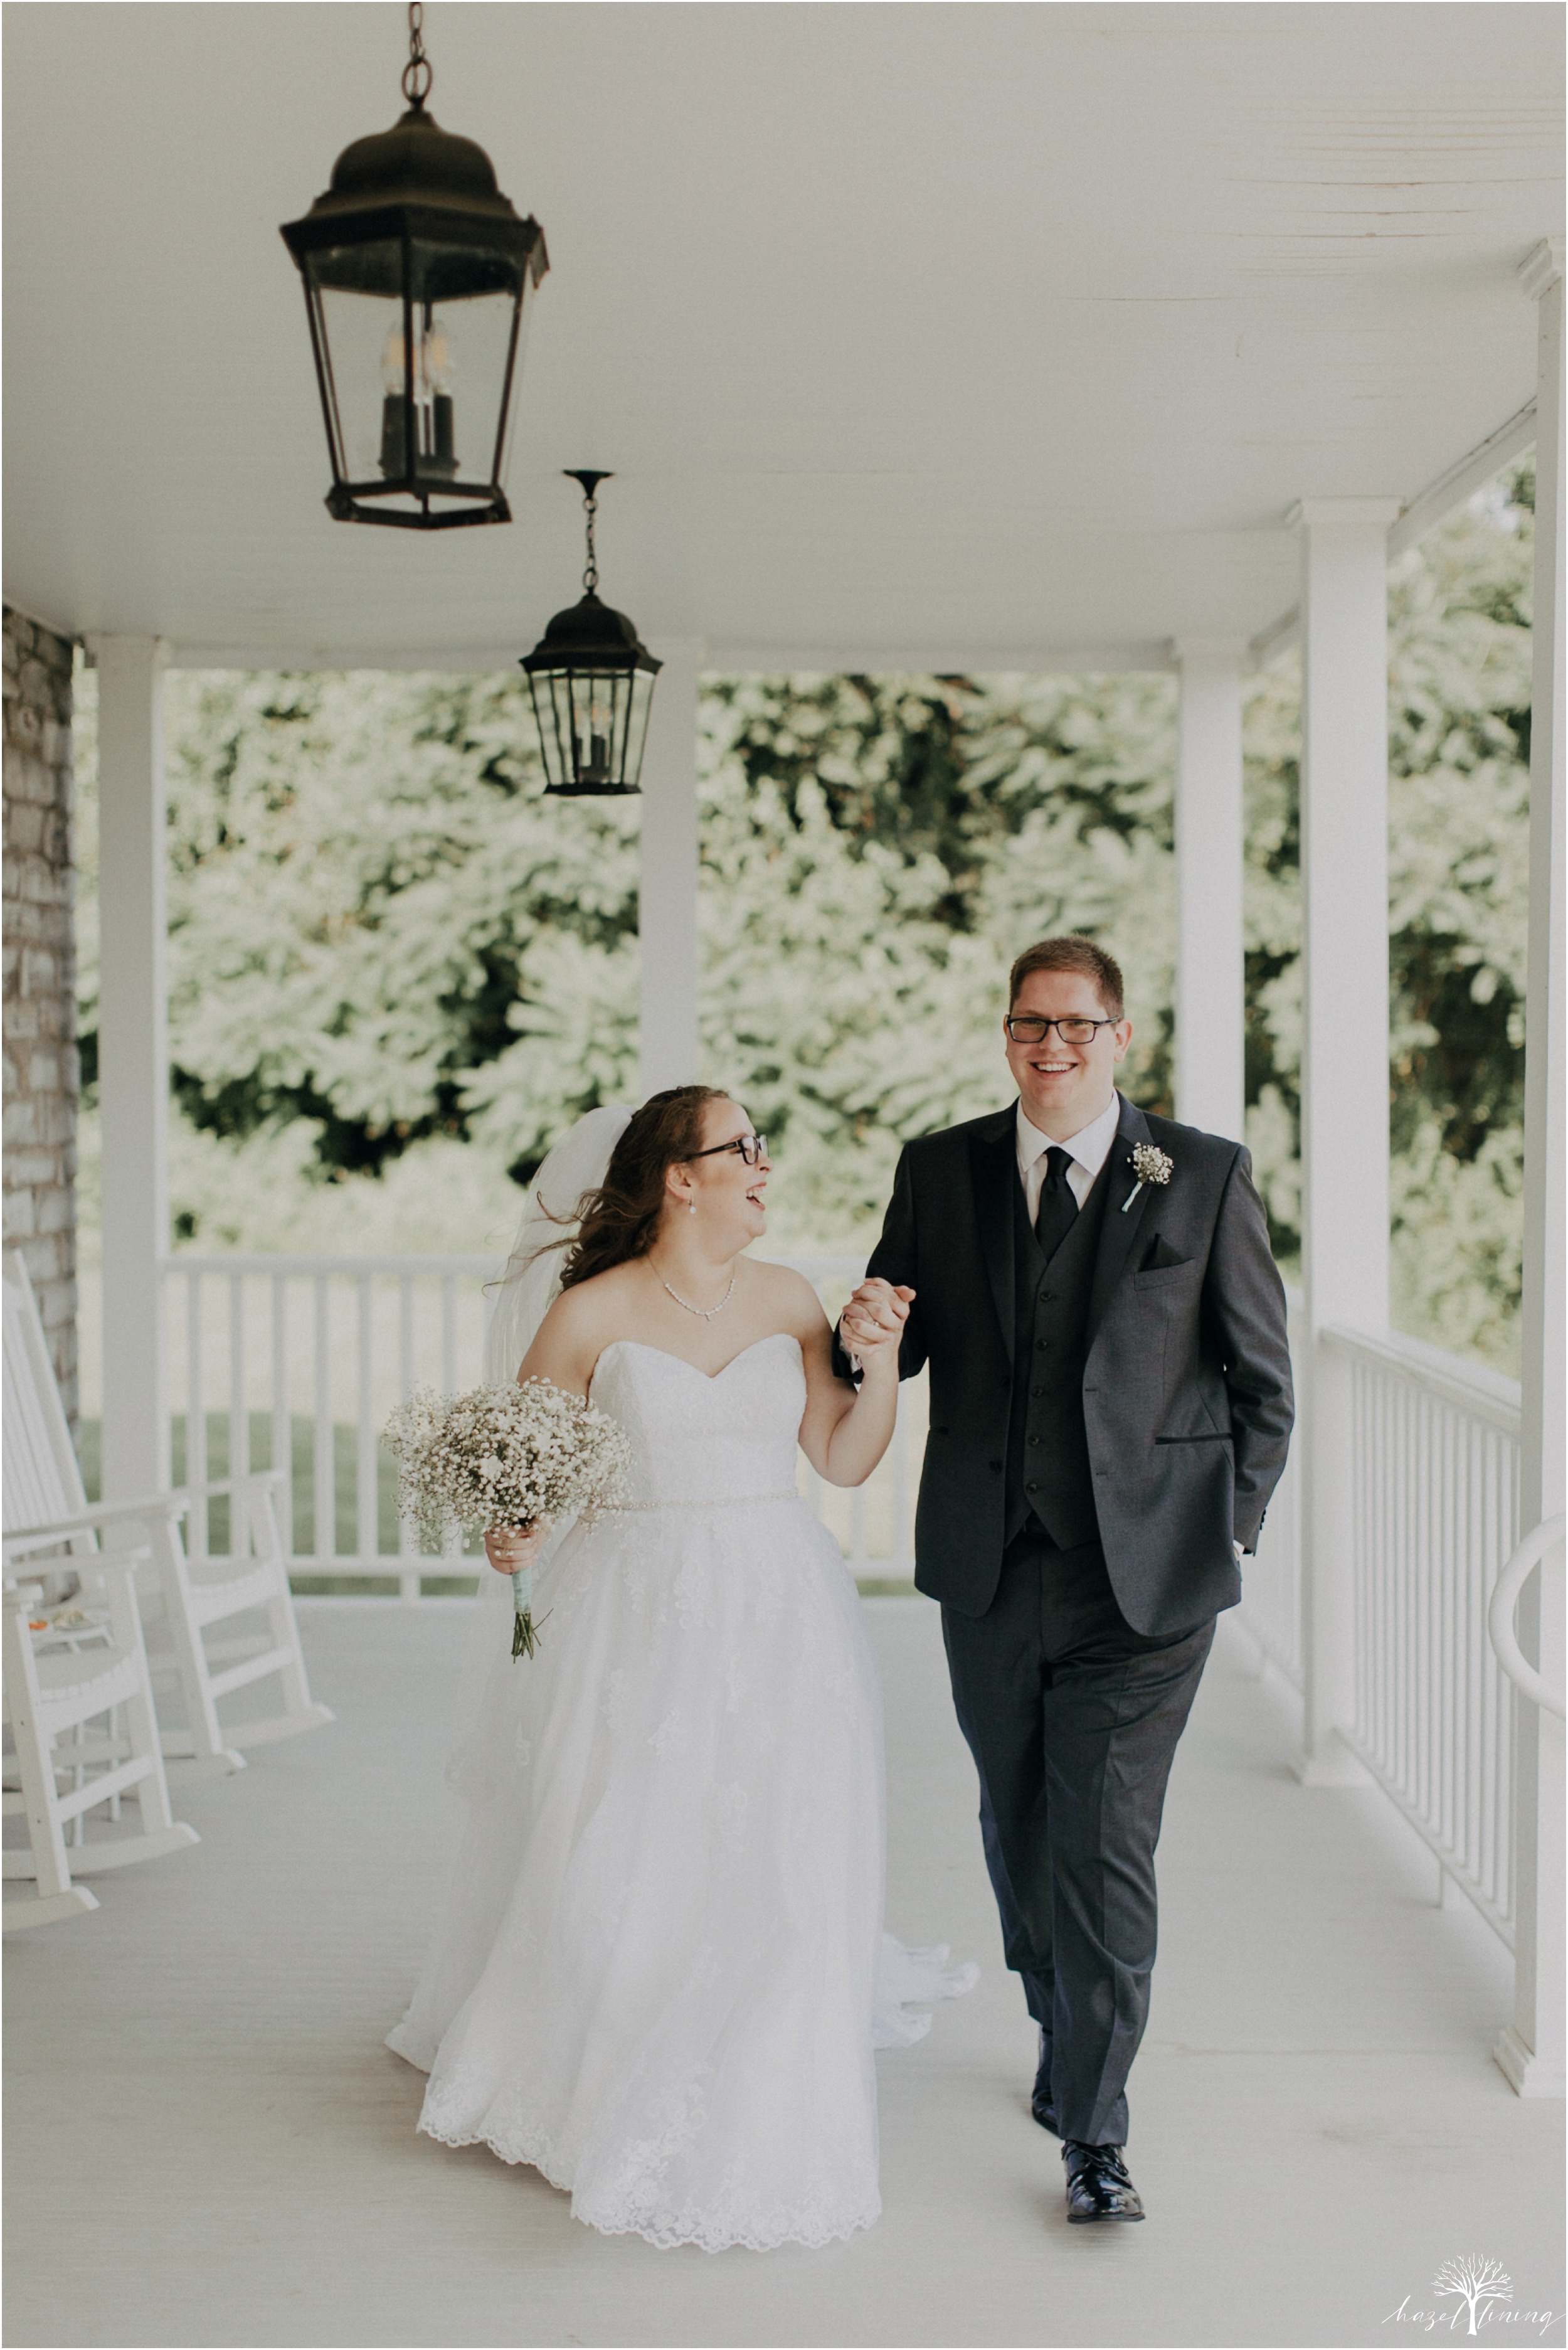 laura-zach-mccaskill-harmony-hall-lebanon-valley-college-summer-wedding-hazel-lining-photography-destination-elopement-wedding-engagement-photography_0100.jpg